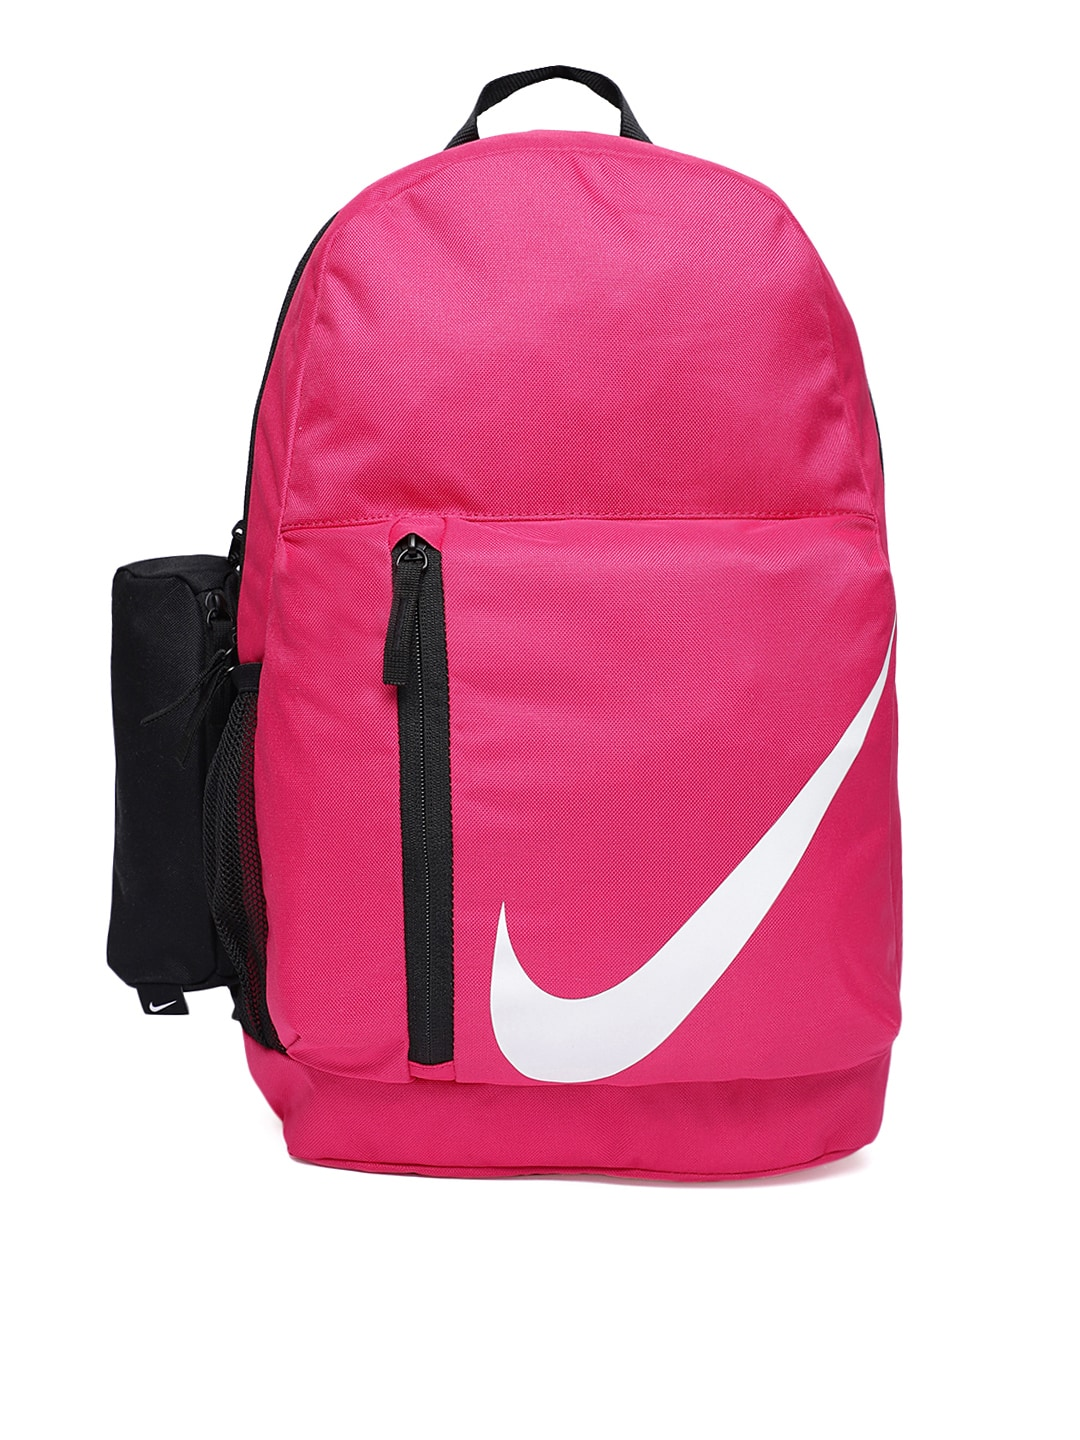 fdac0ff713 Nike Backpacks Hat - Buy Nike Backpacks Hat online in India